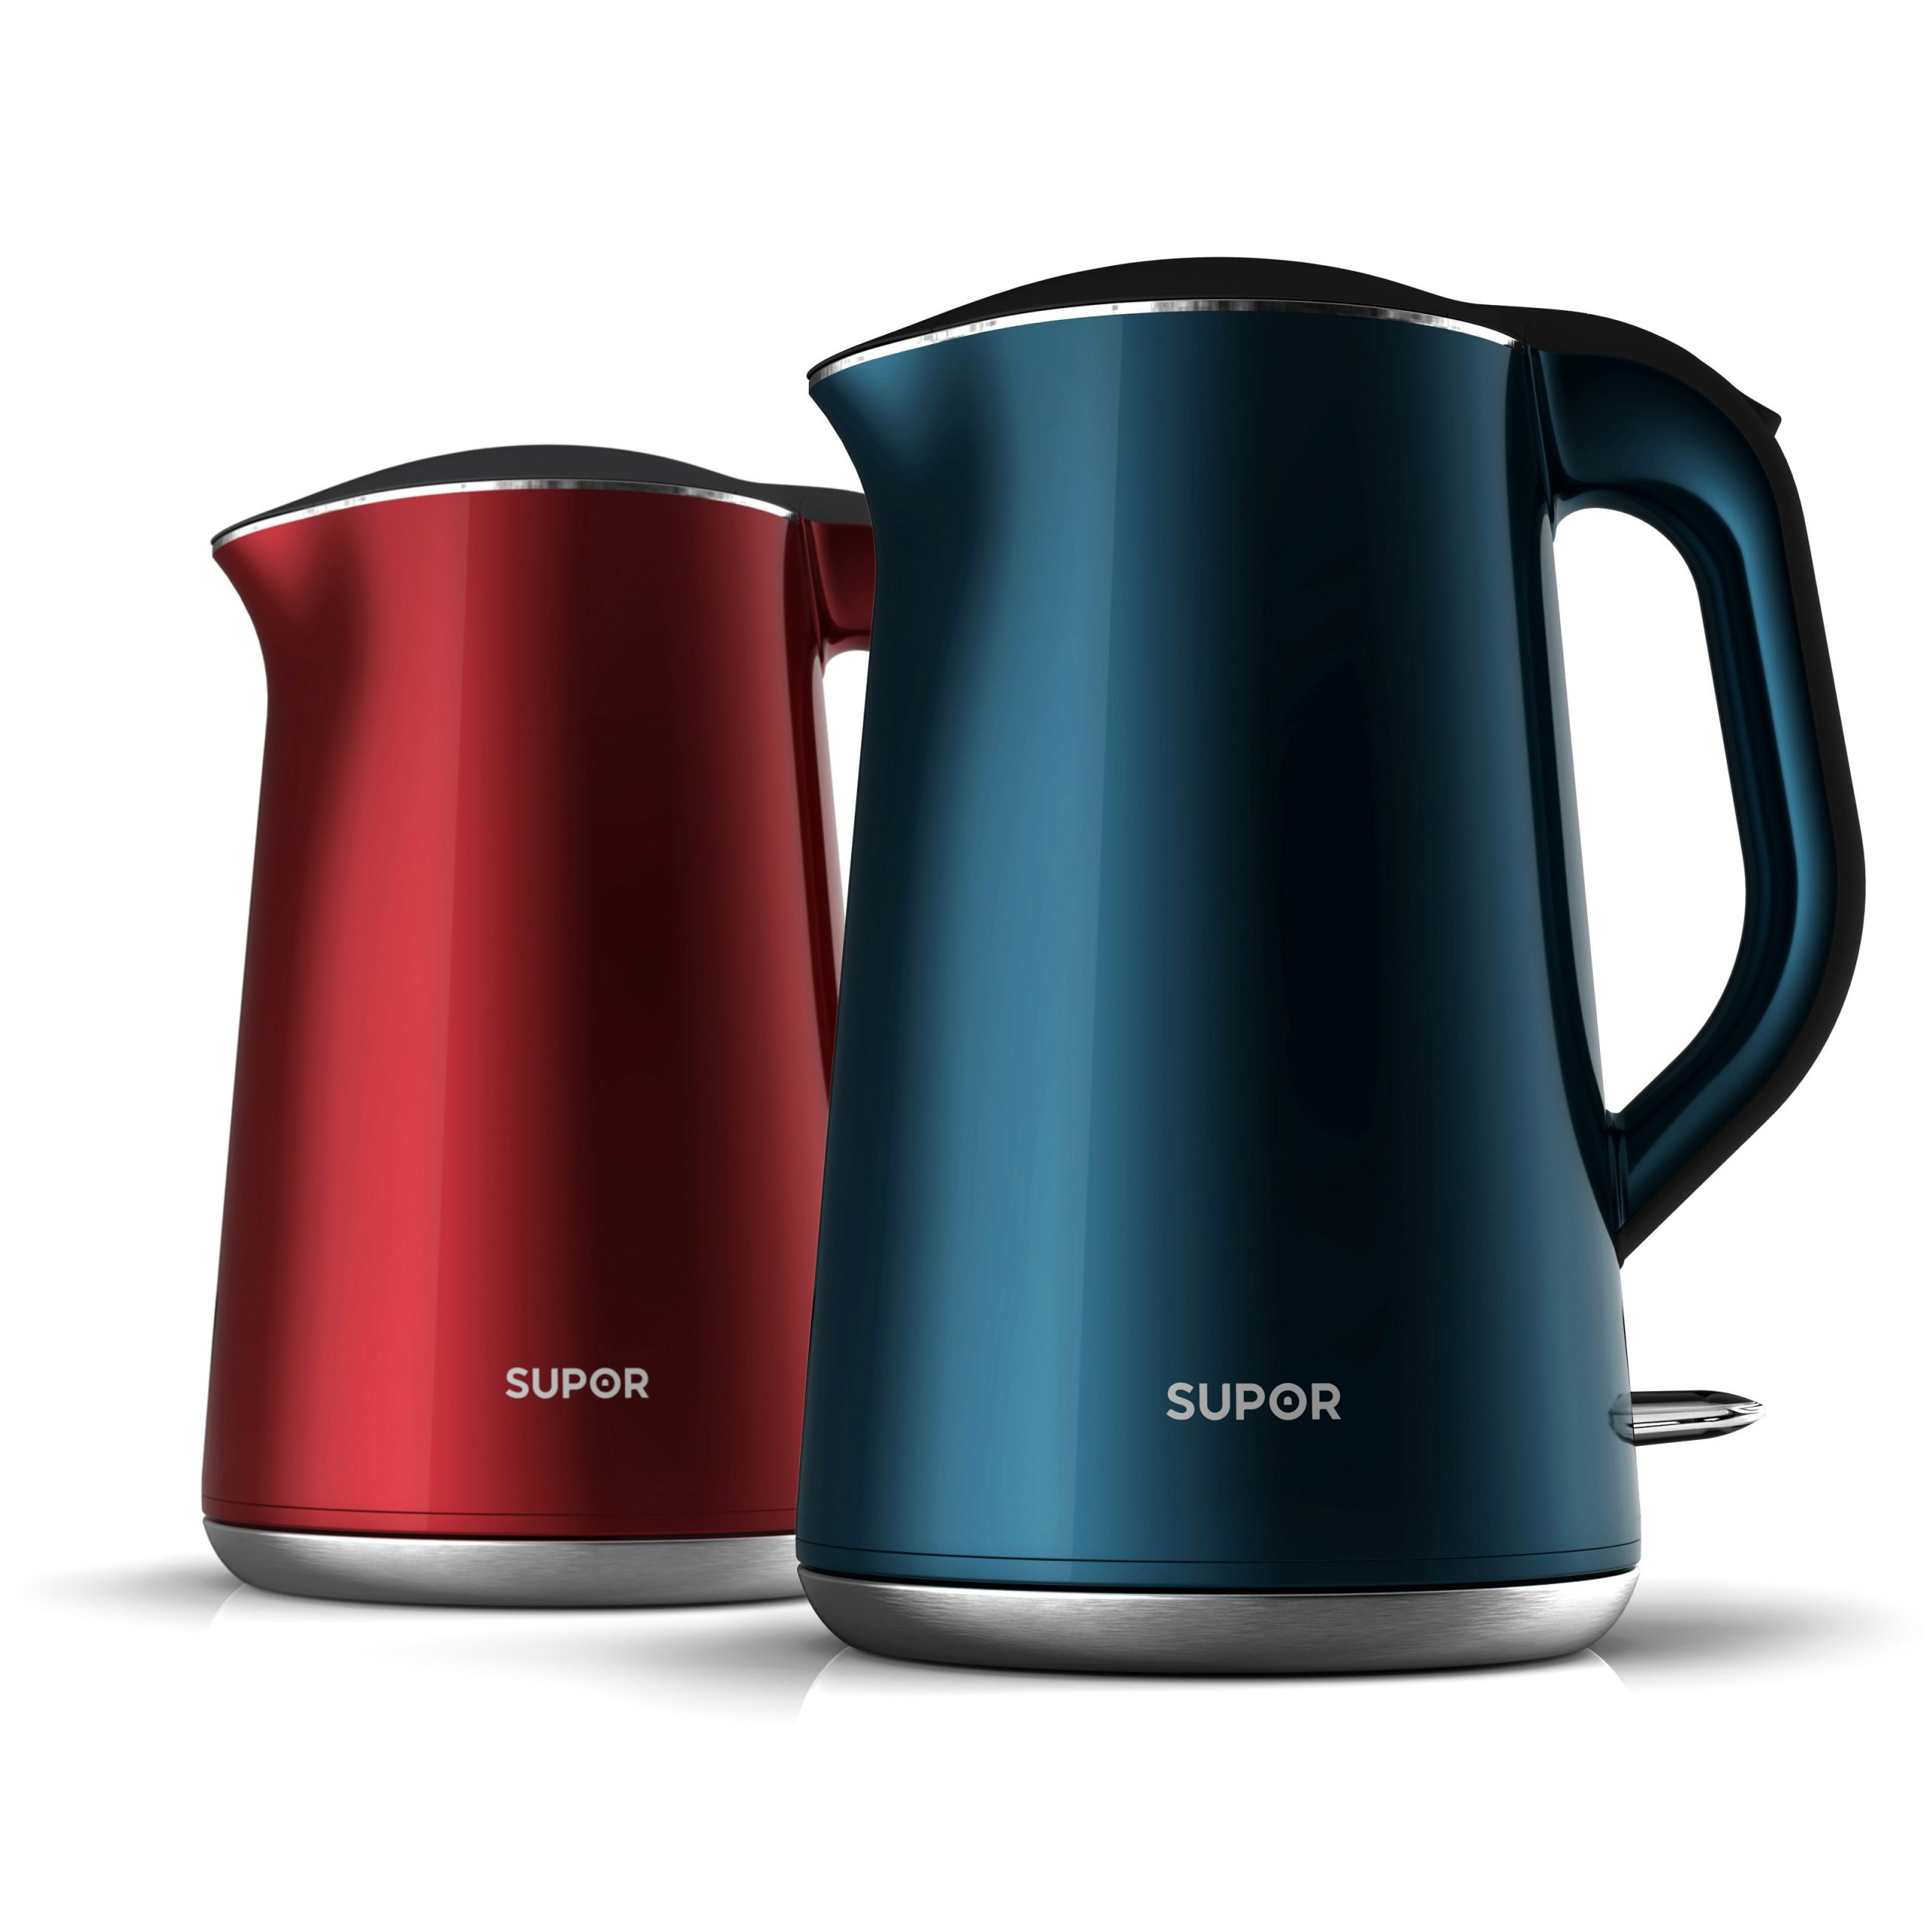 Featured Story - Supor Kettle Range Design